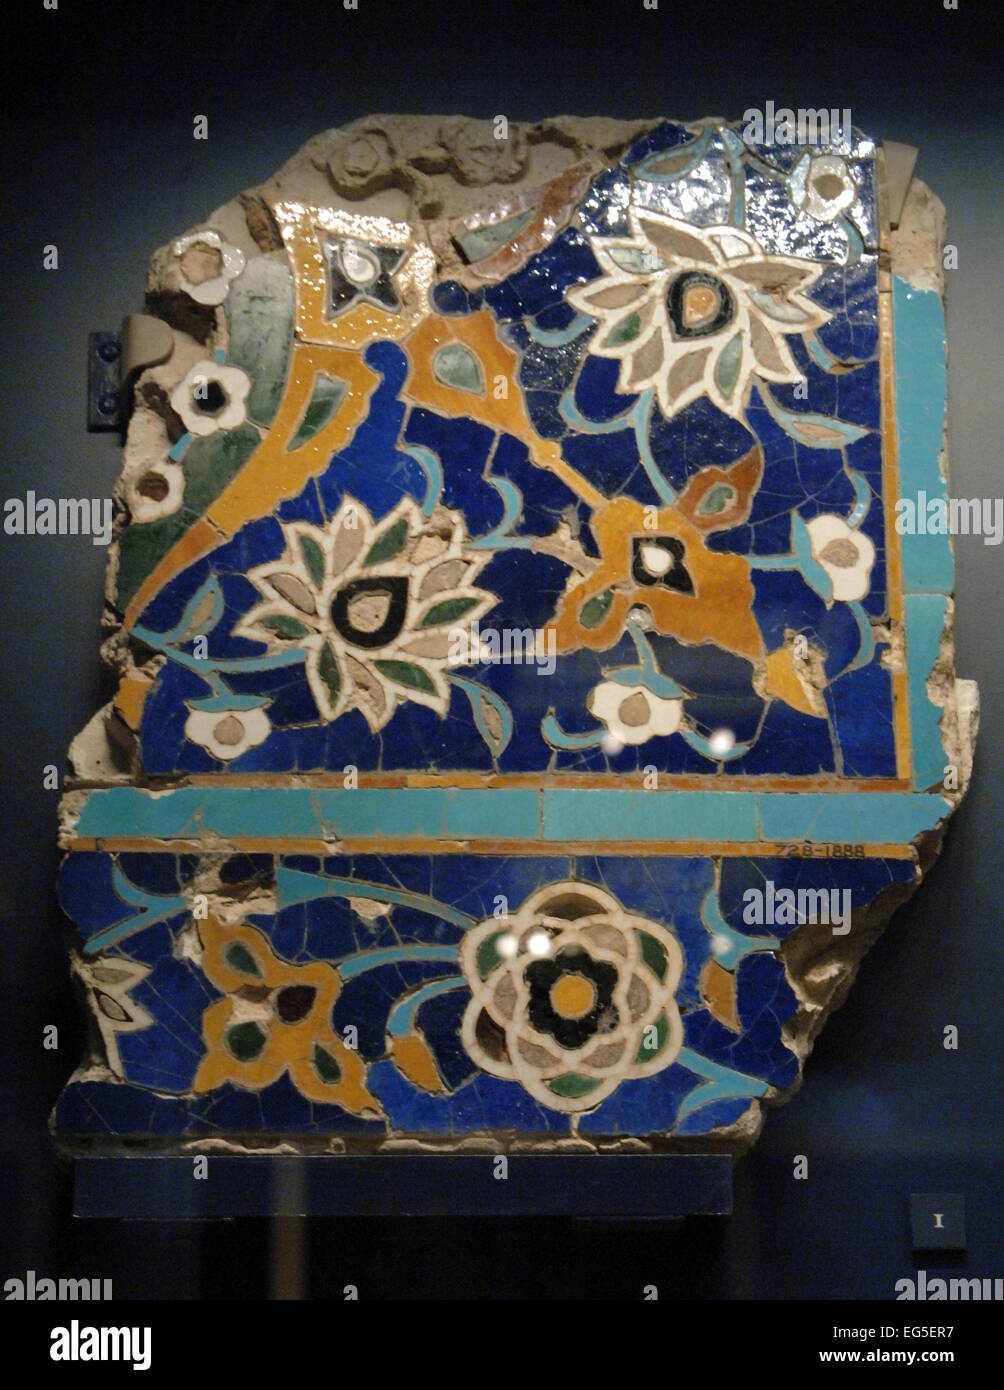 Islamic art. Iran. Glazed mosaic tile. 1450-1500. Floral design. Probably from Isfahan. Victoria and Albert museum. - Stock Image